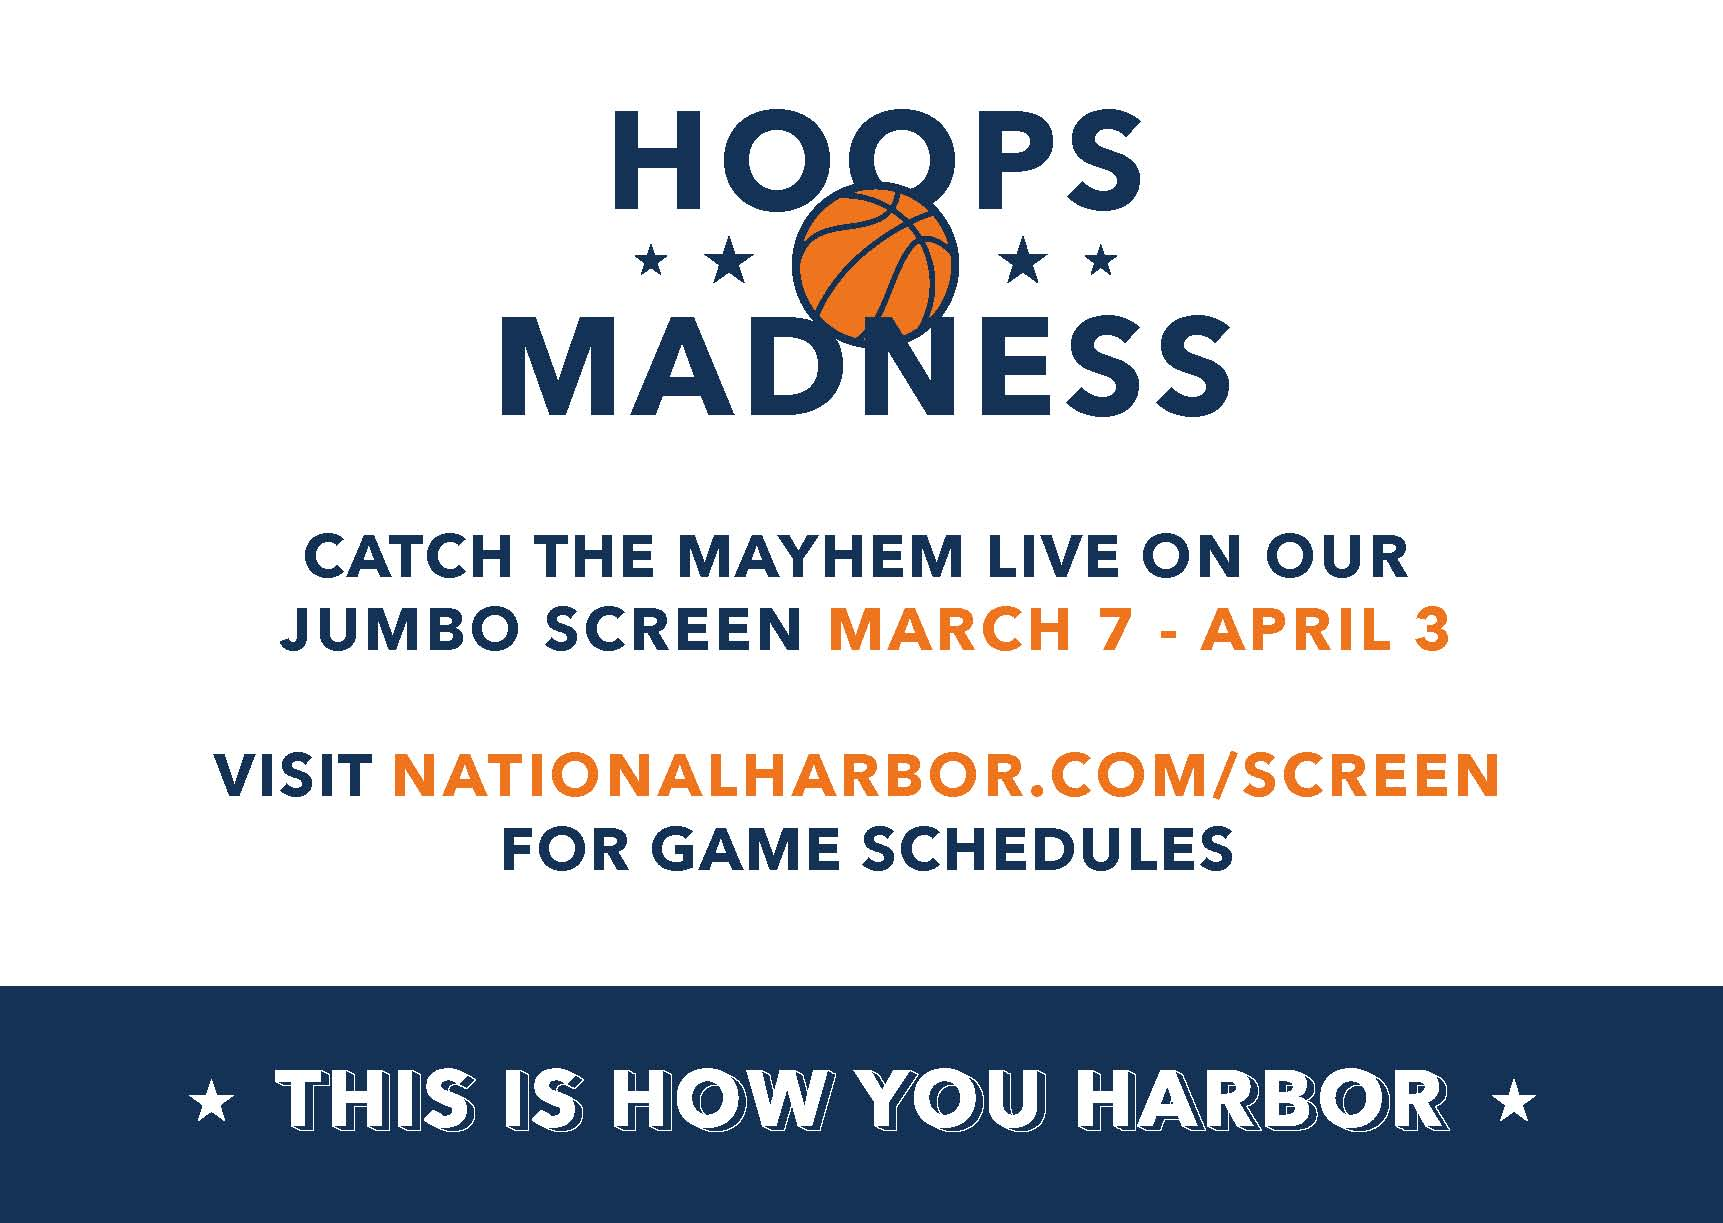 hoops-madness-2017-03-23